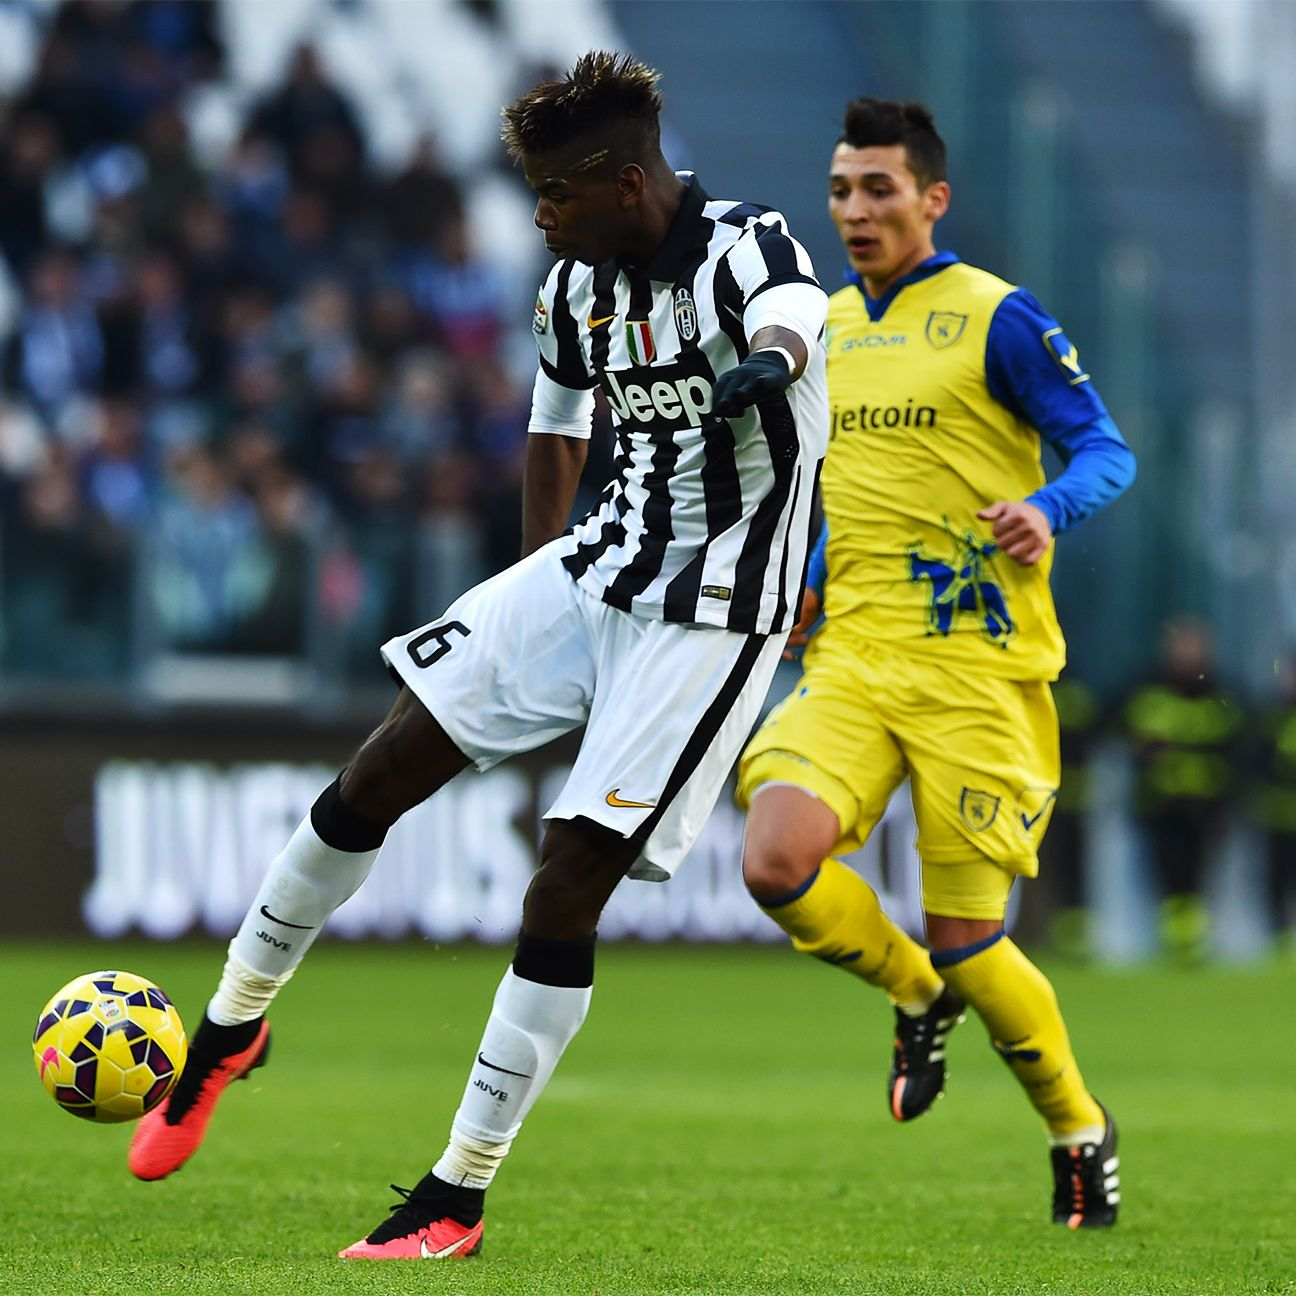 With the Juventus attacking line out of sorts, Paul Pogba stepped forward to lead the Serie A leaders to victory.